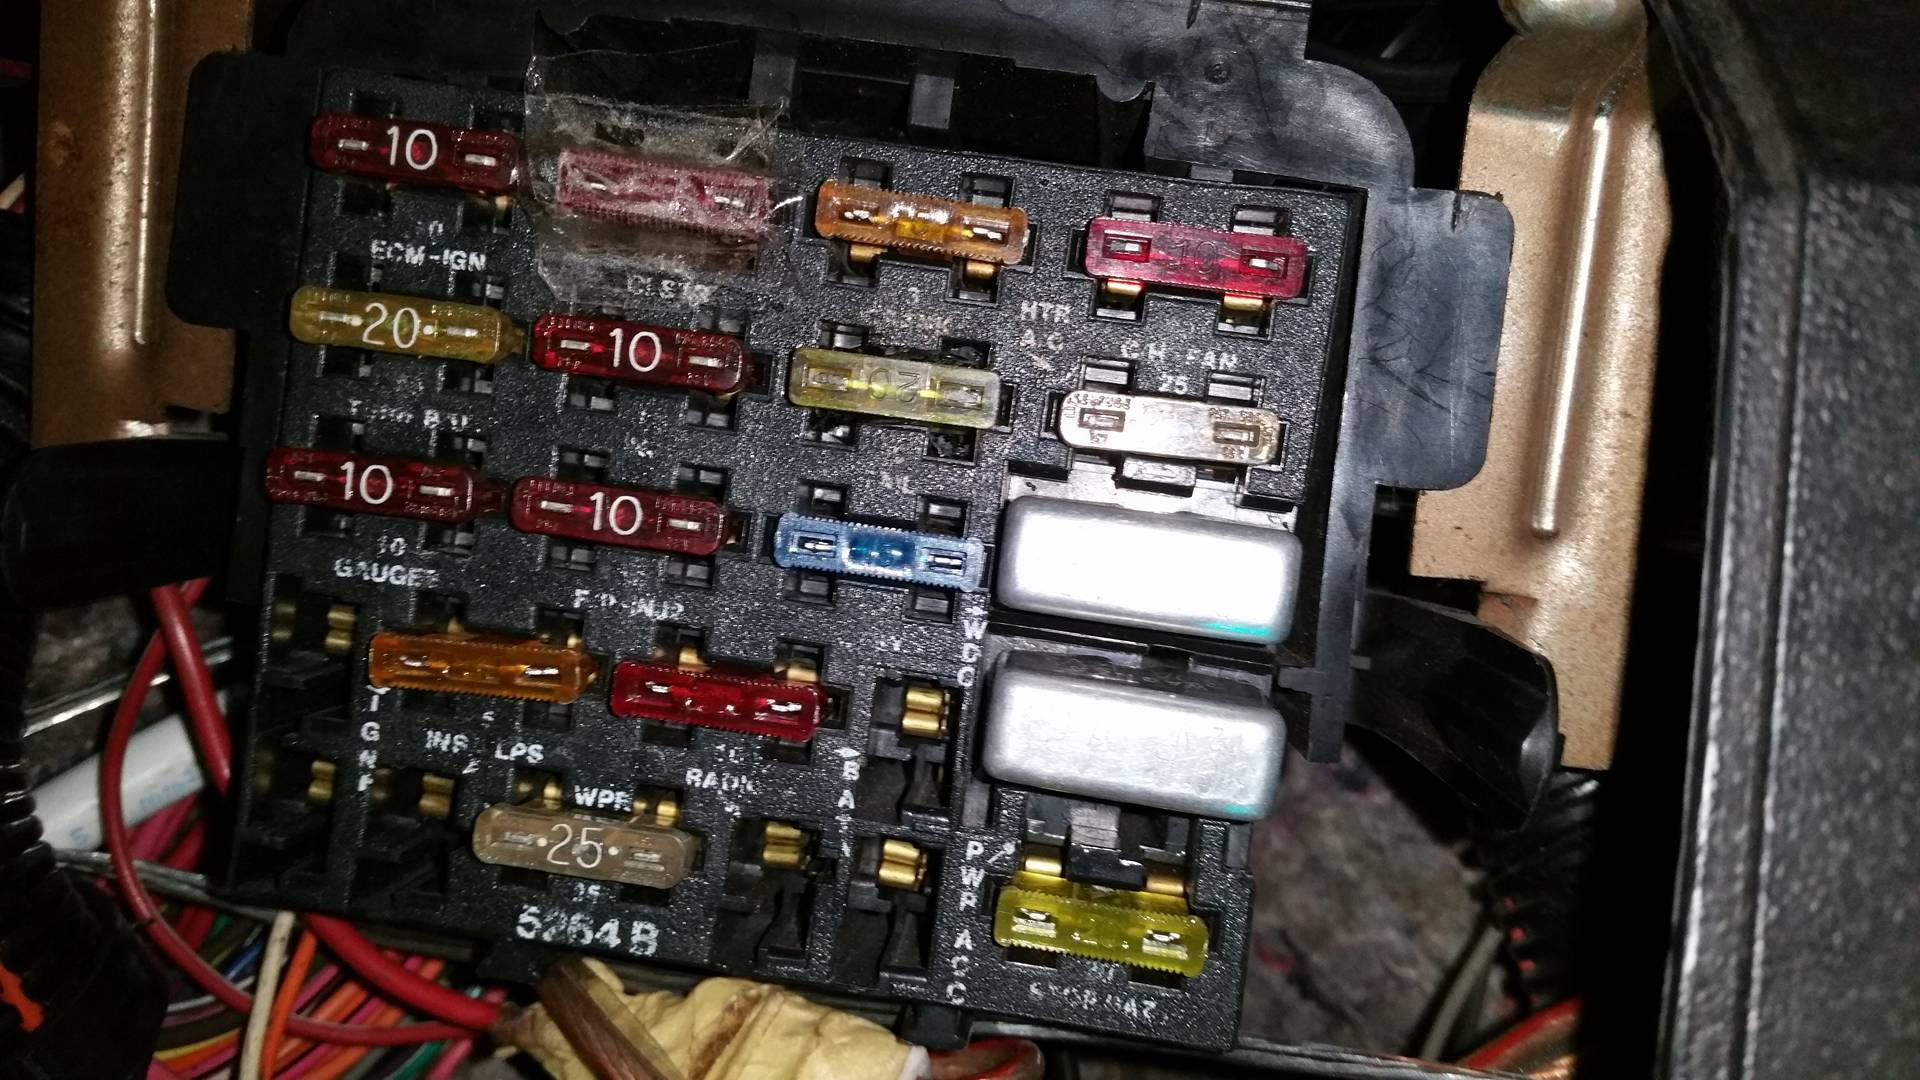 pontiac firebird 1989 fusebox diagram - third generation f ... 89 silverado fuse box diagram #6